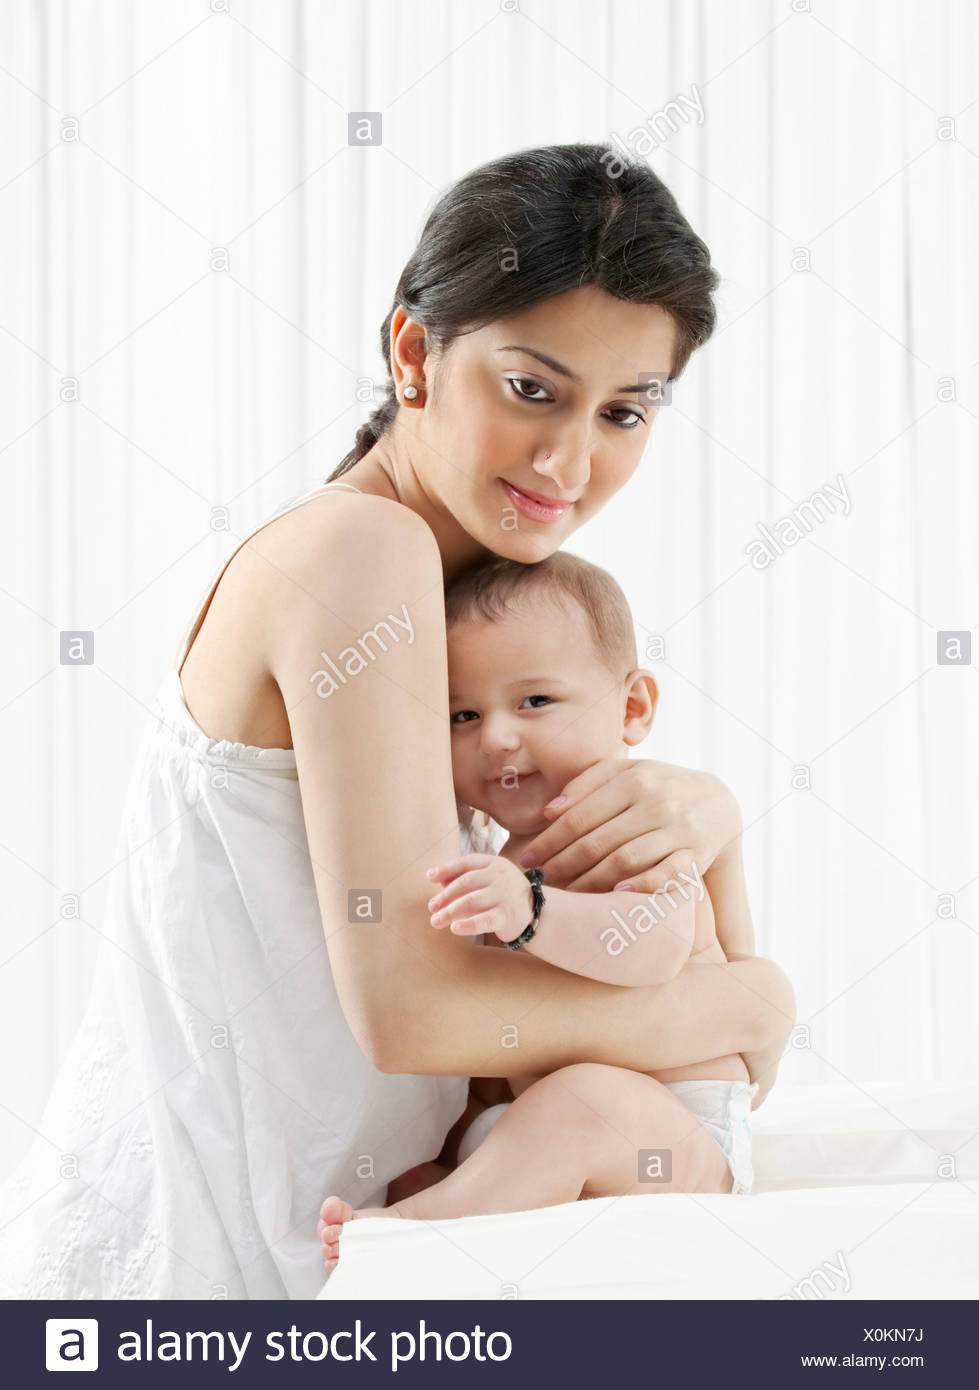 Mother hugging her baby - Stock Image